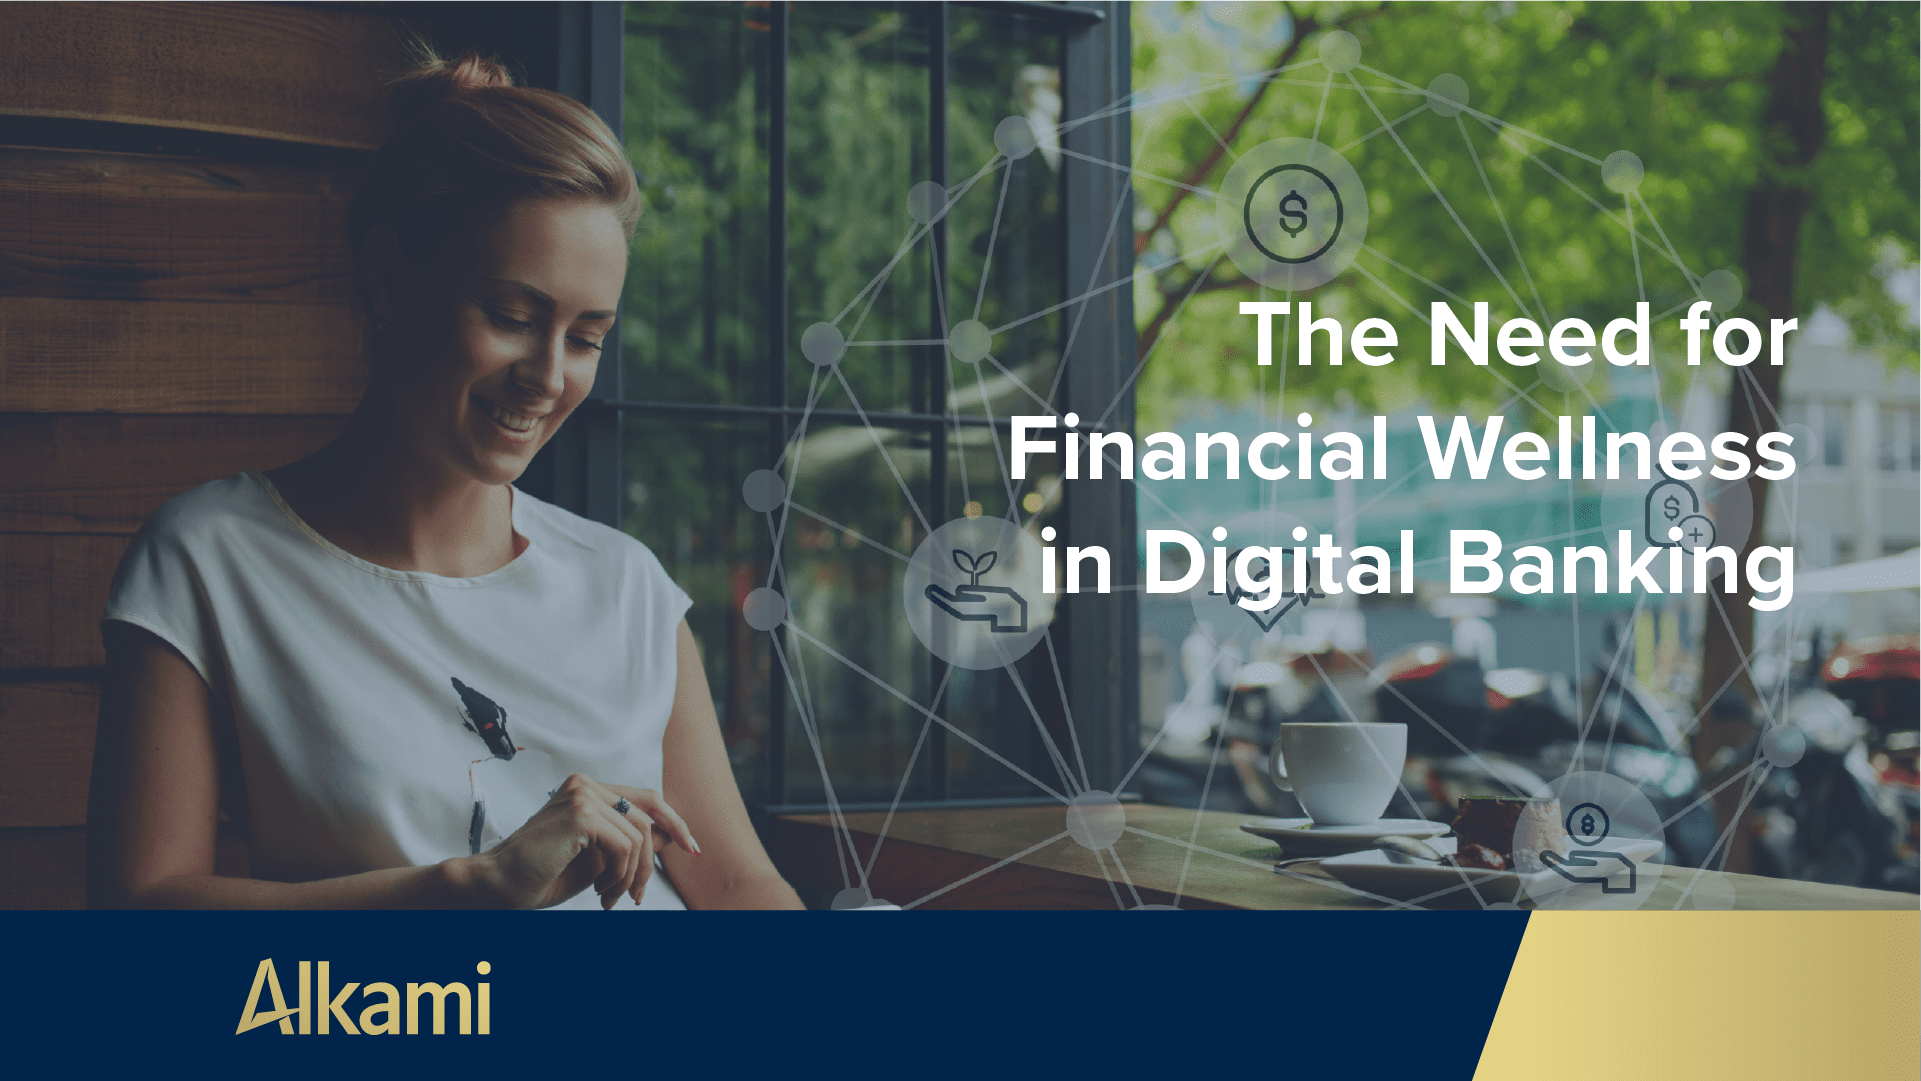 The Need for Financial Wellness in Digital Banking